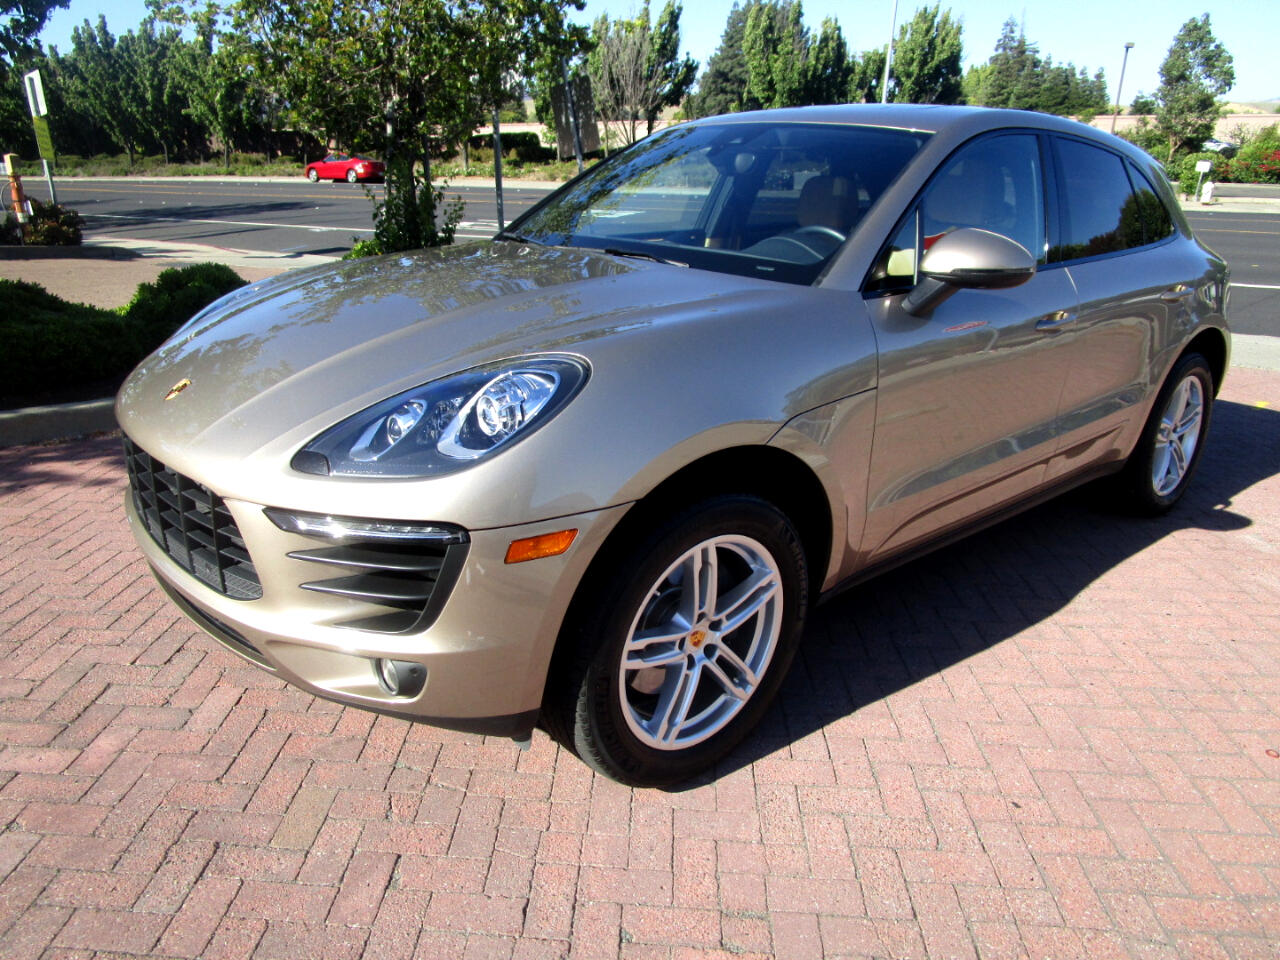 2017 Porsche Macan AWD*PANO*HEAT/AC SEATS*REAR HEAT SEATS*HEAT STR WH